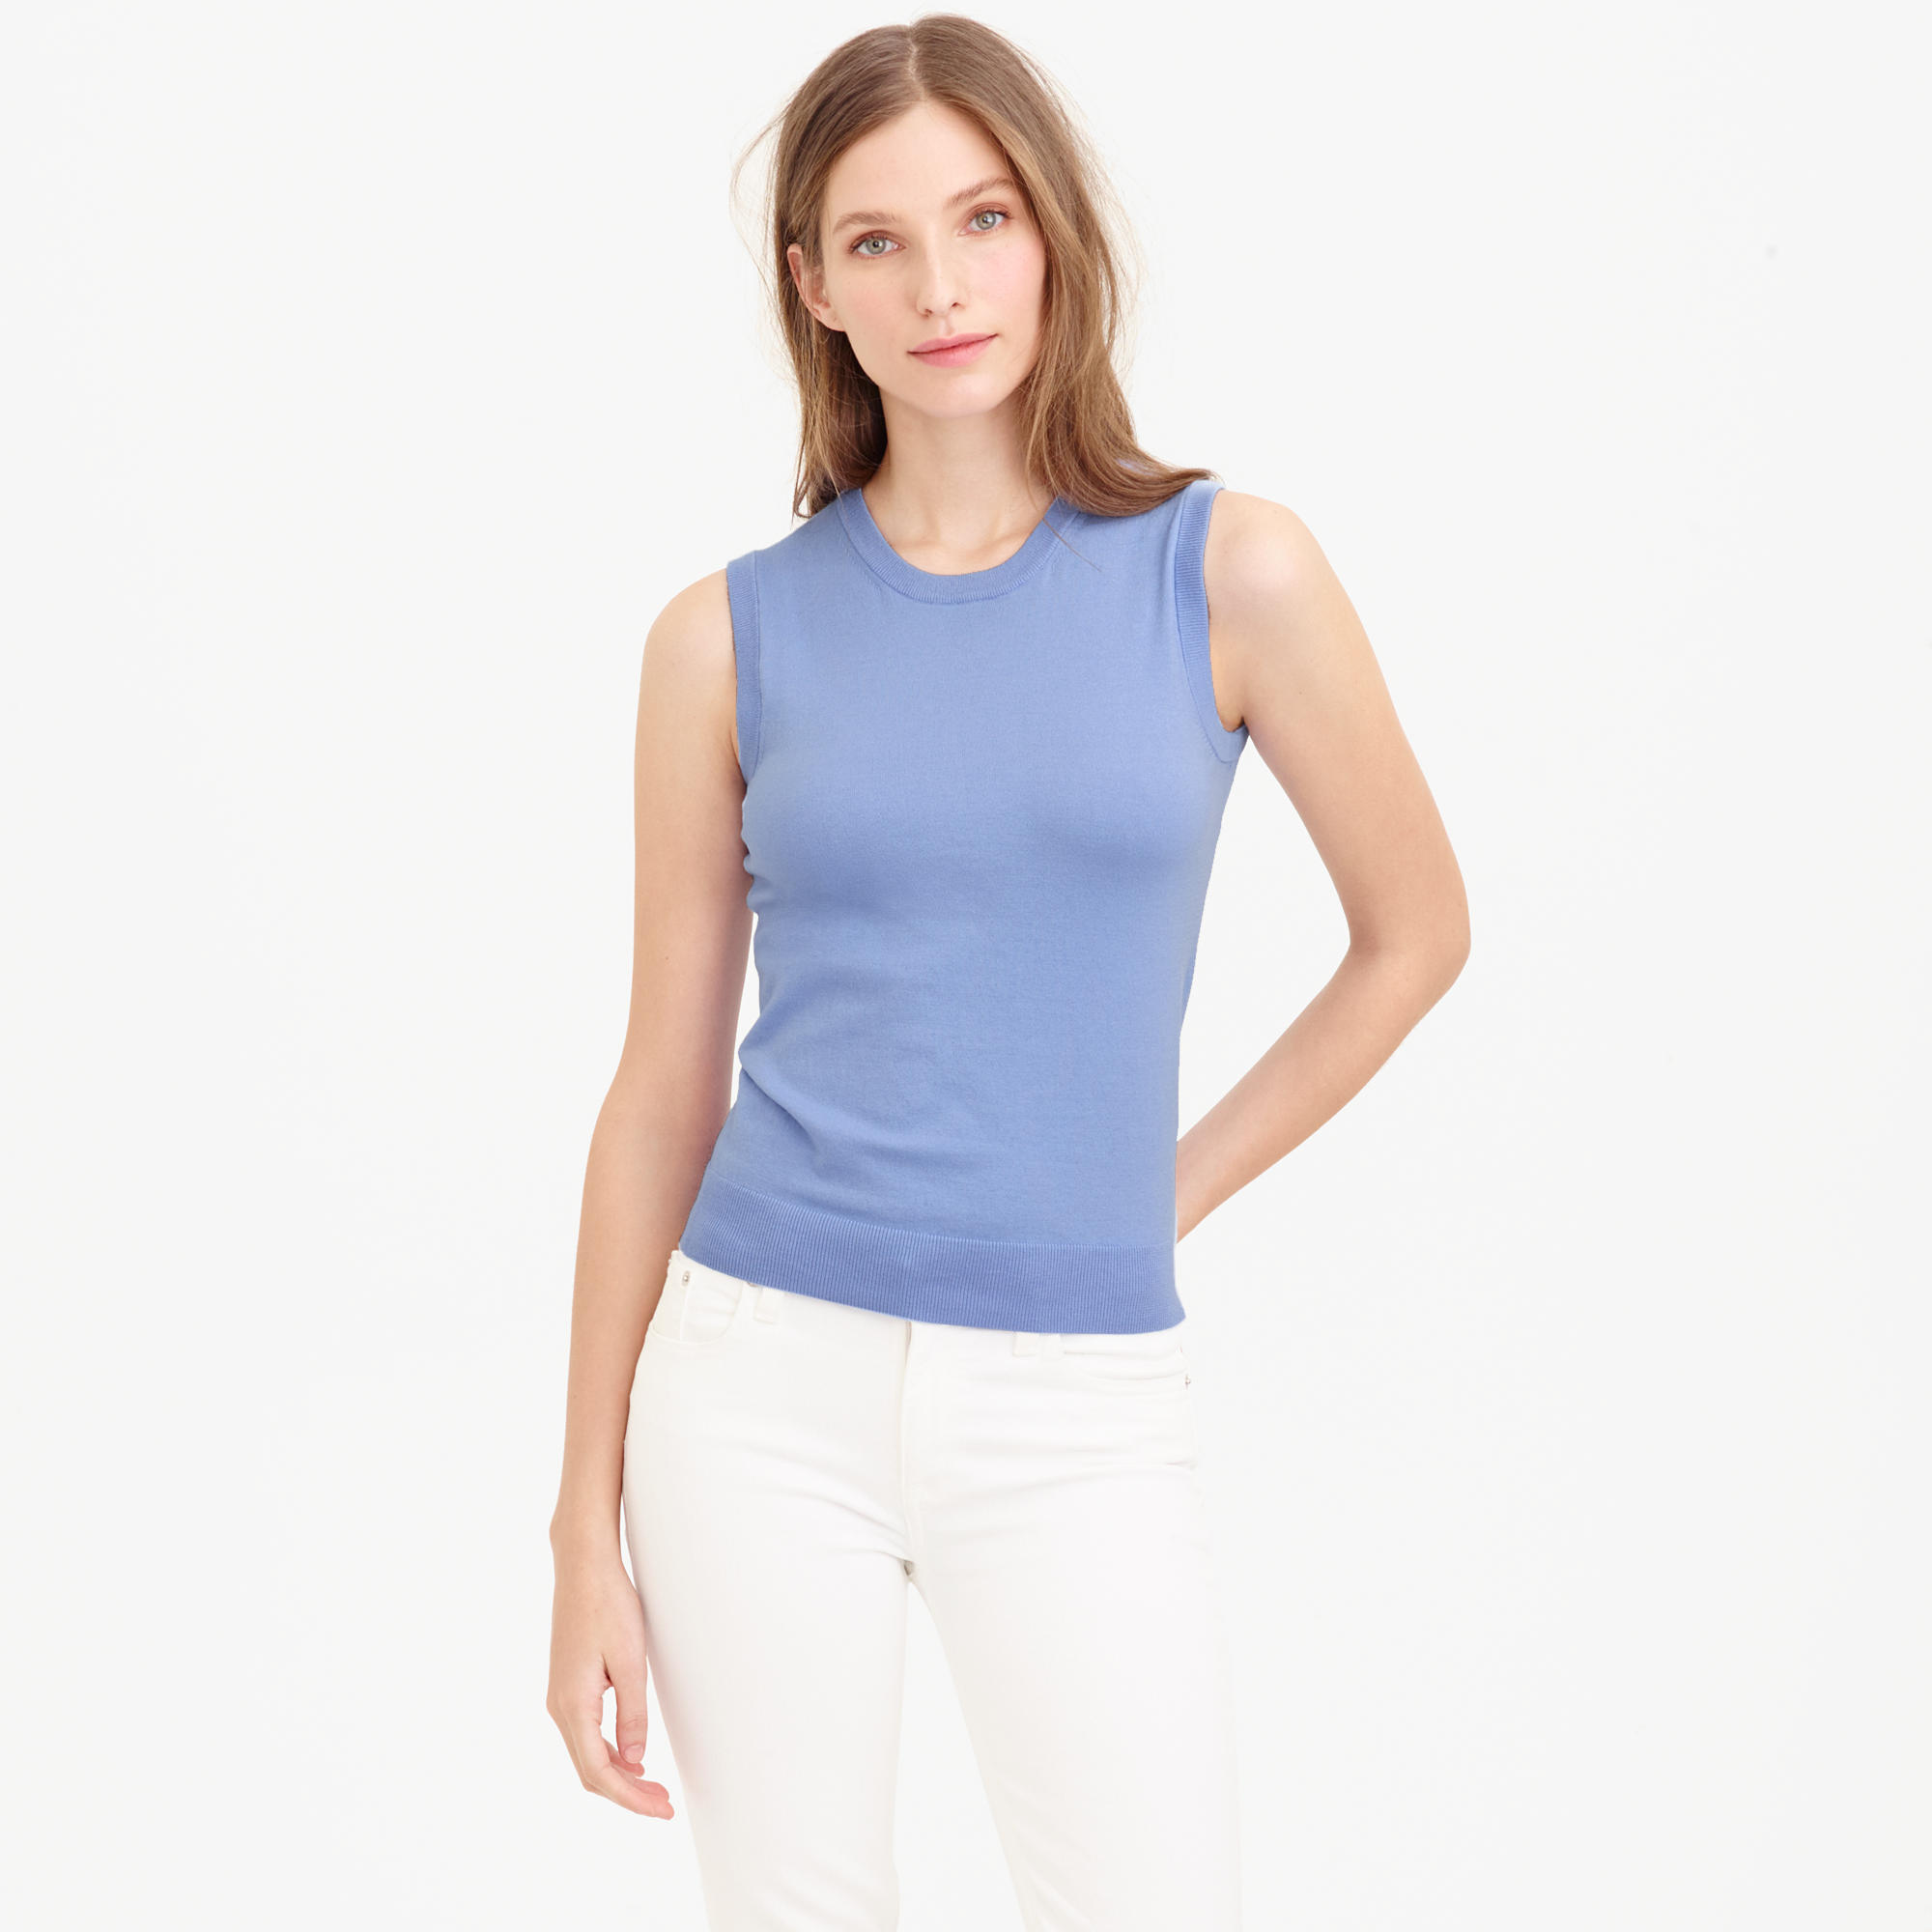 Women Online Clothing